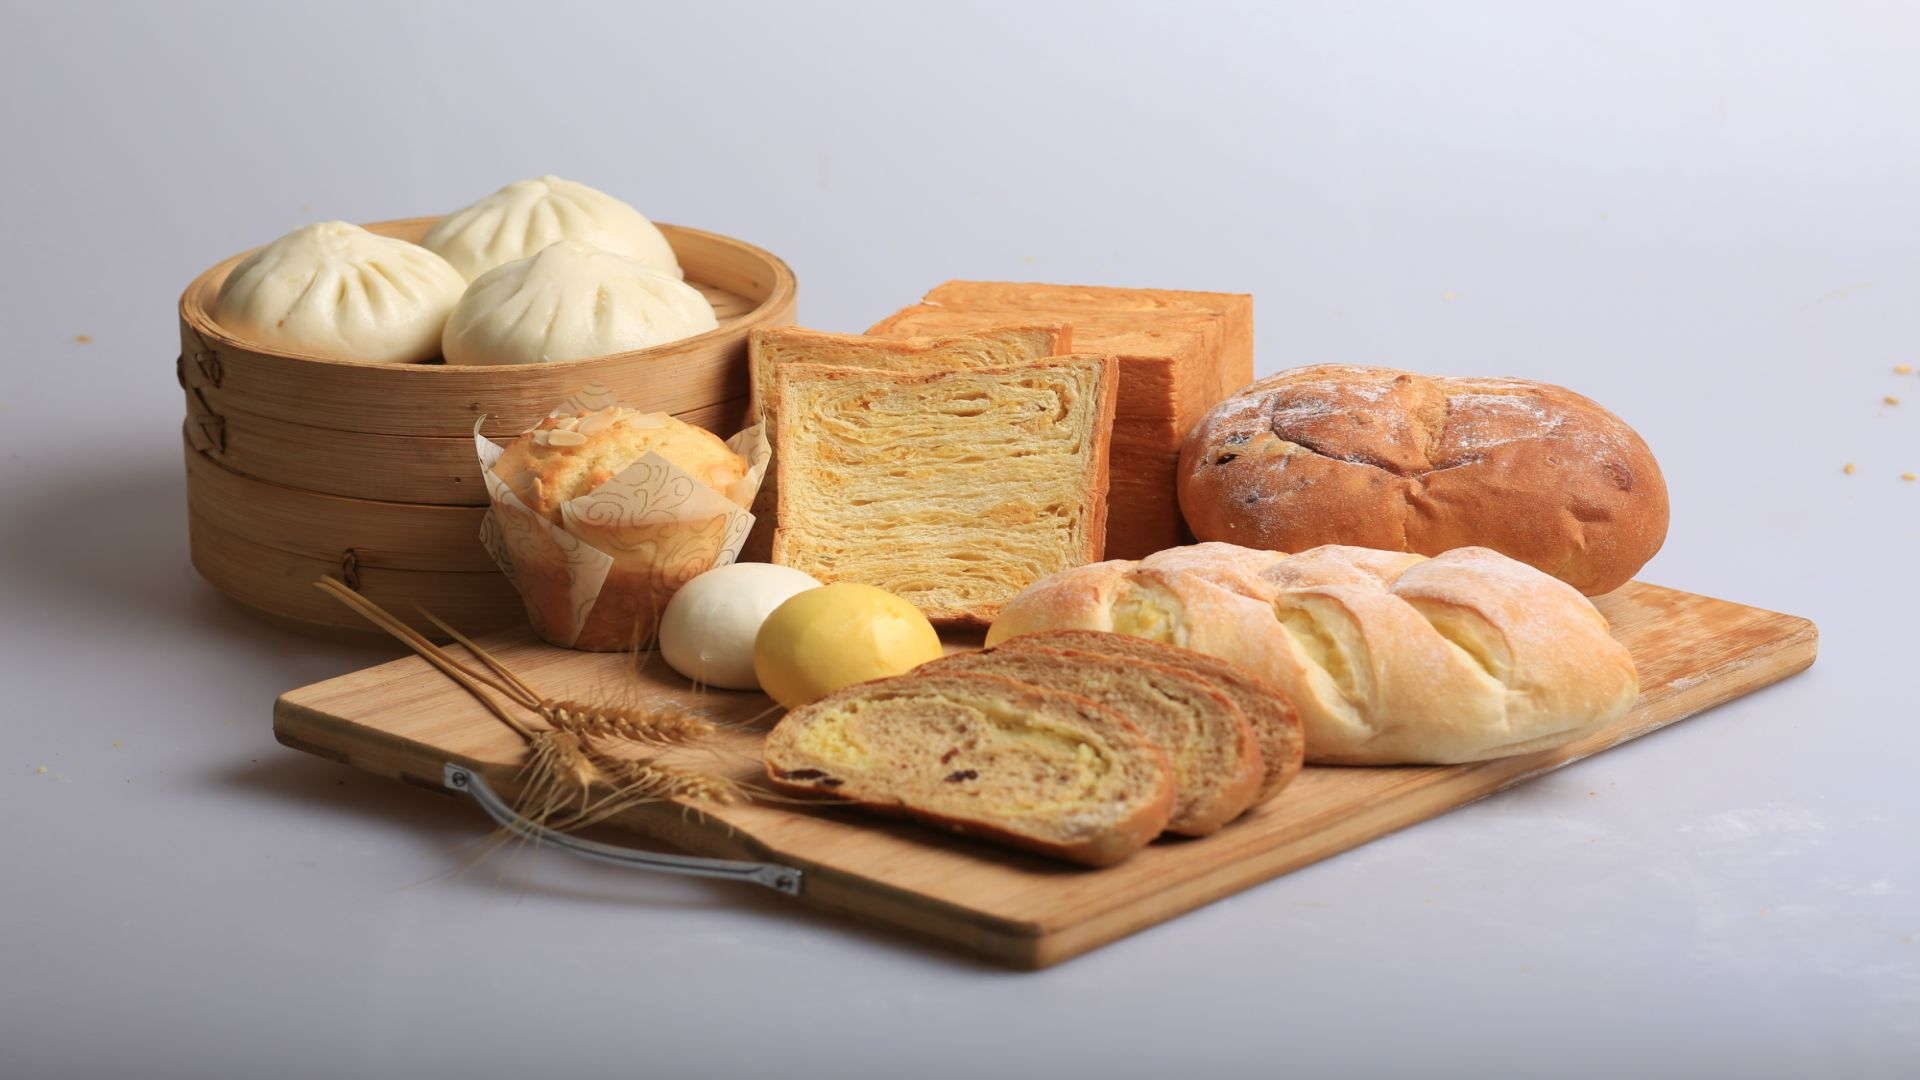 Bühler Group has sold its flour ingredient business to Bakels Group